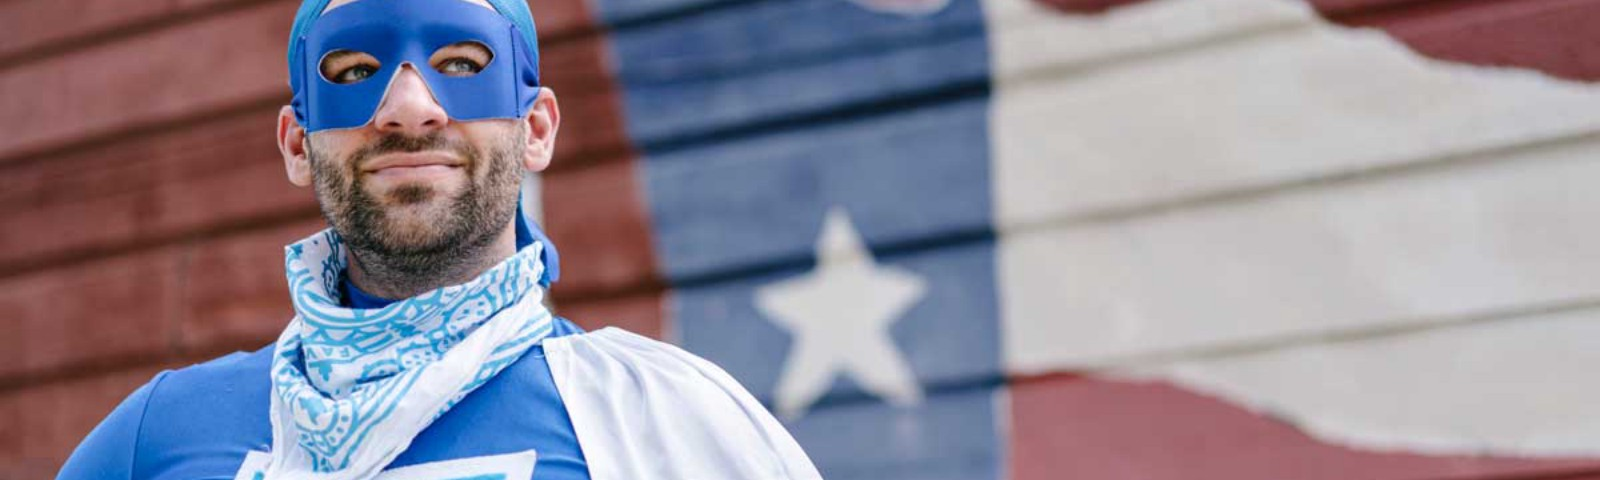 """Man wearing a blue """"Favorman"""" super hero costume standing in front of a Texas flag"""